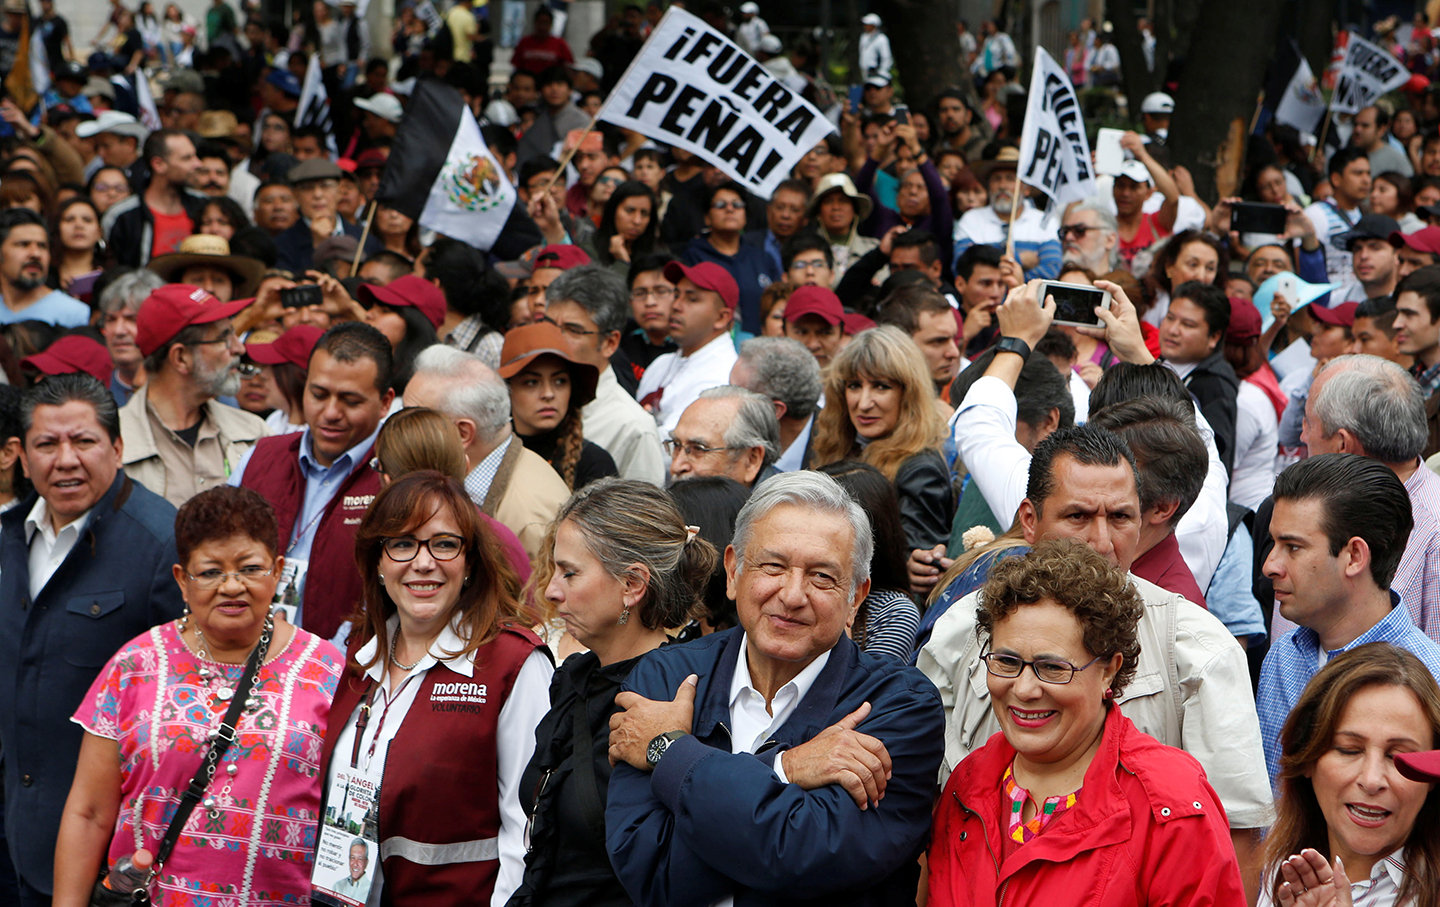 Demosntration with Lopez-Obrador